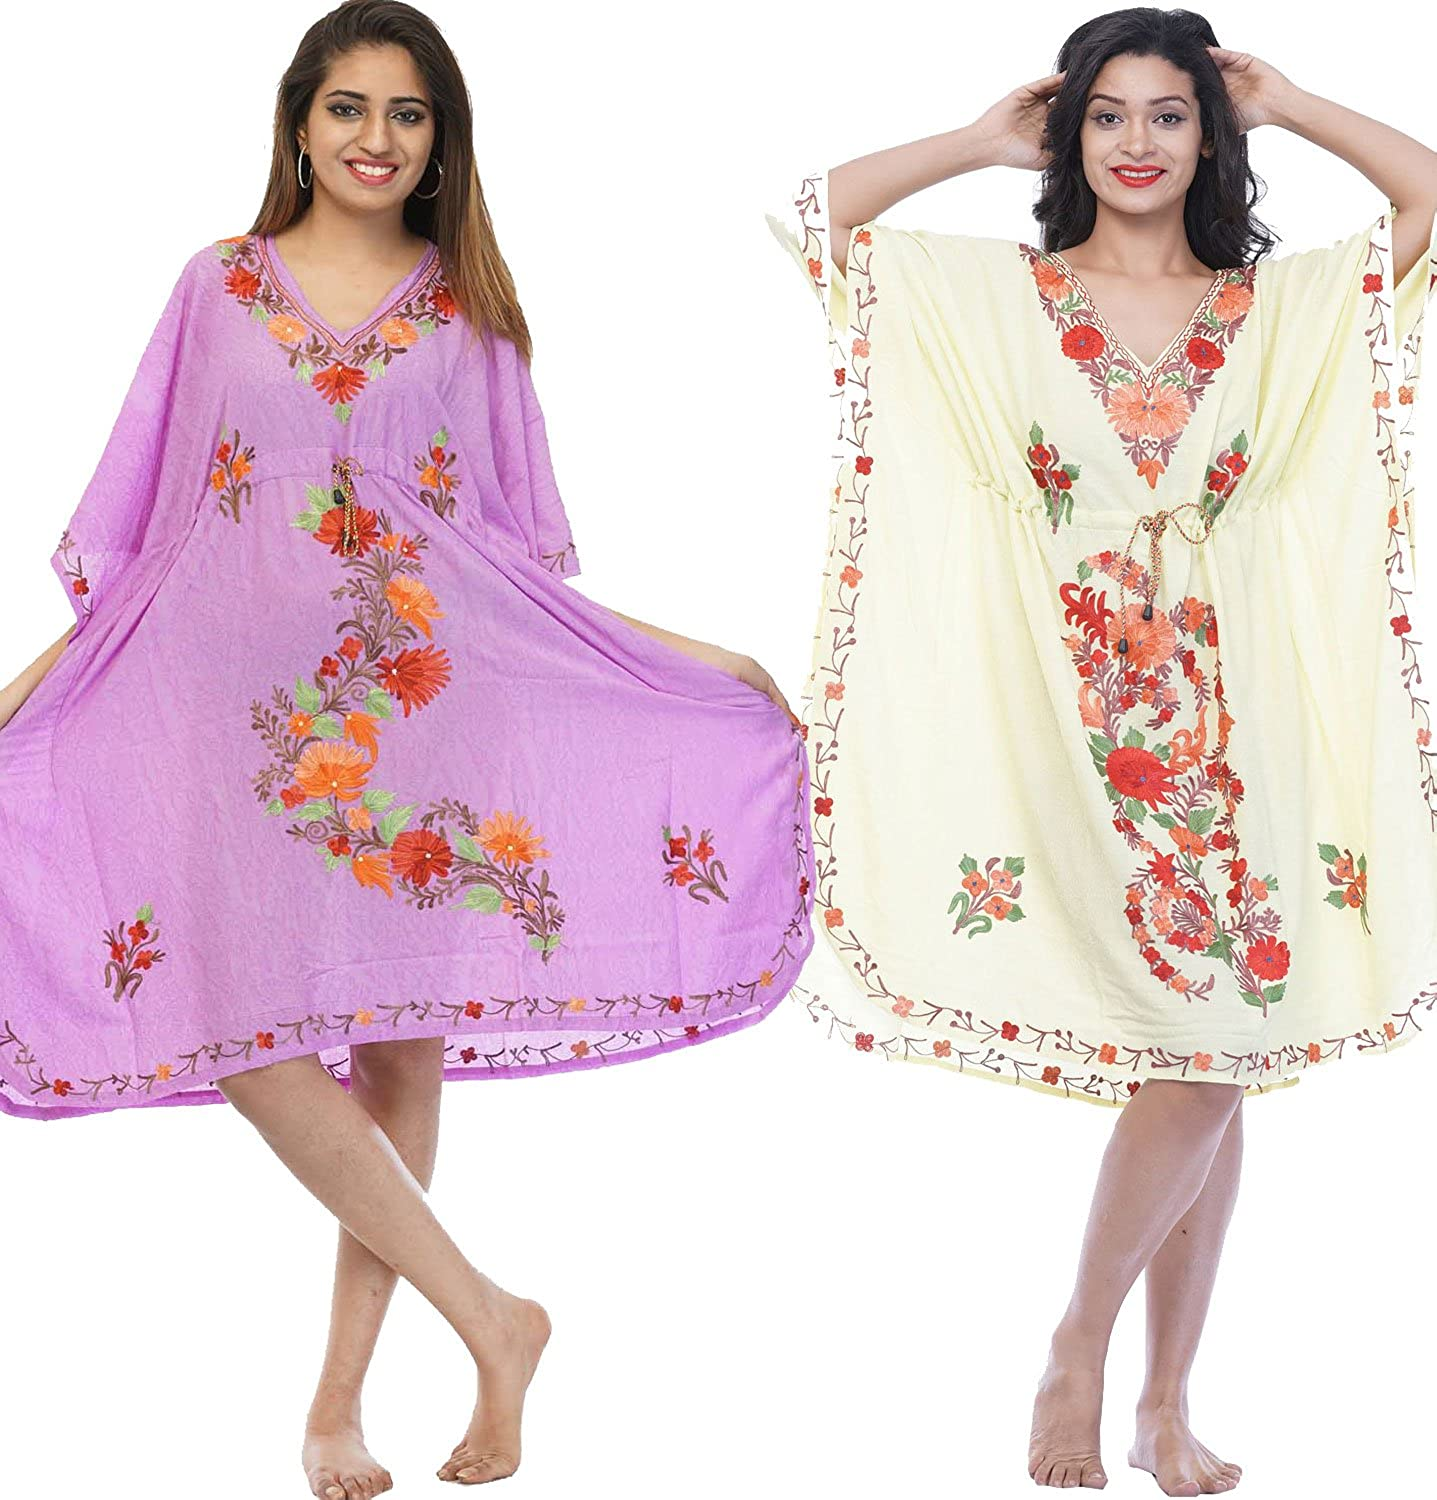 Odishabazaar Cotton Kashmiri Kaftan Beach Dress/Swimsuit Cover Up Combo(465) gpck-467